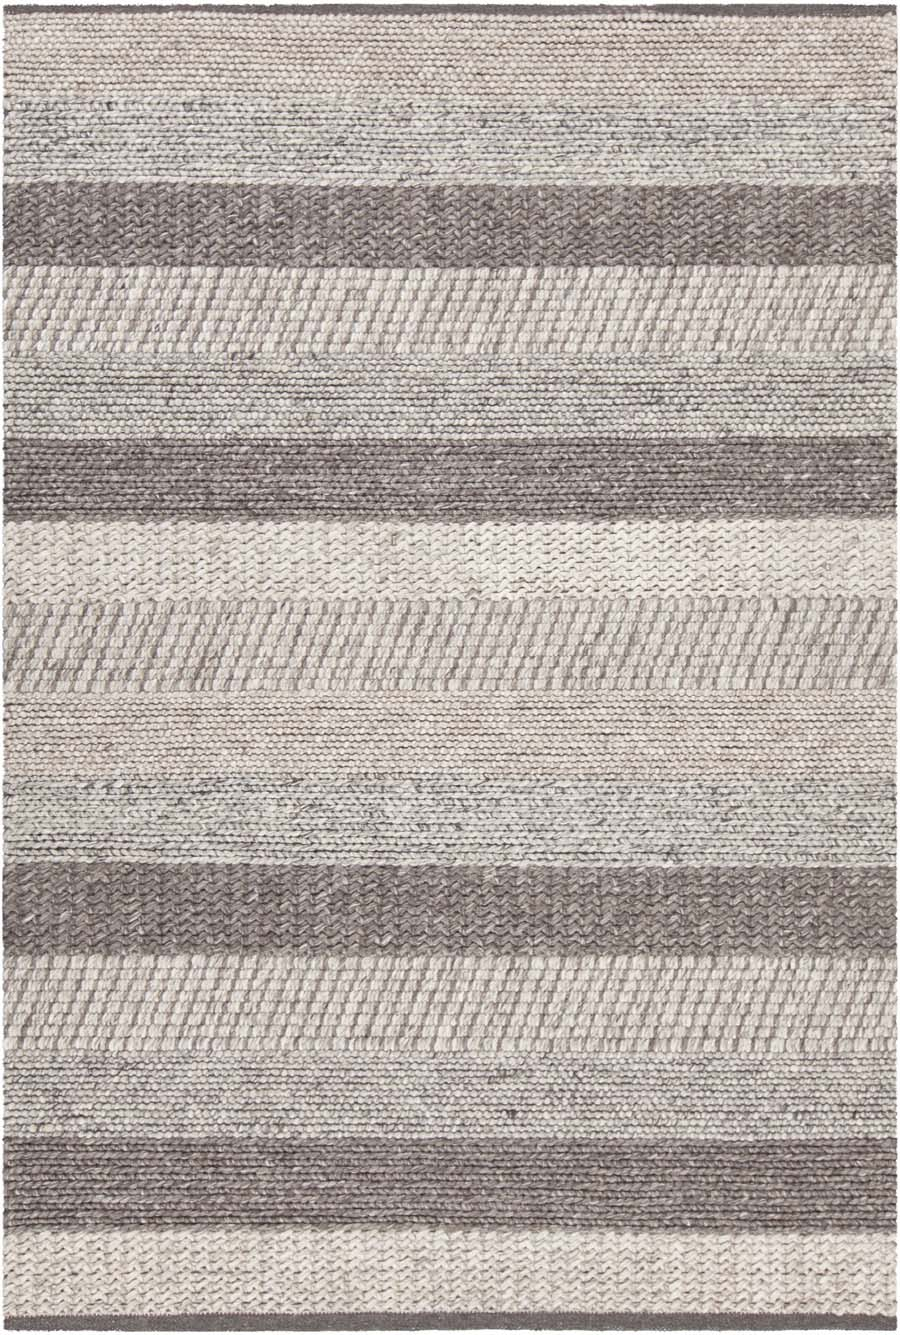 Chandra Forstel FOR-36901 Rug